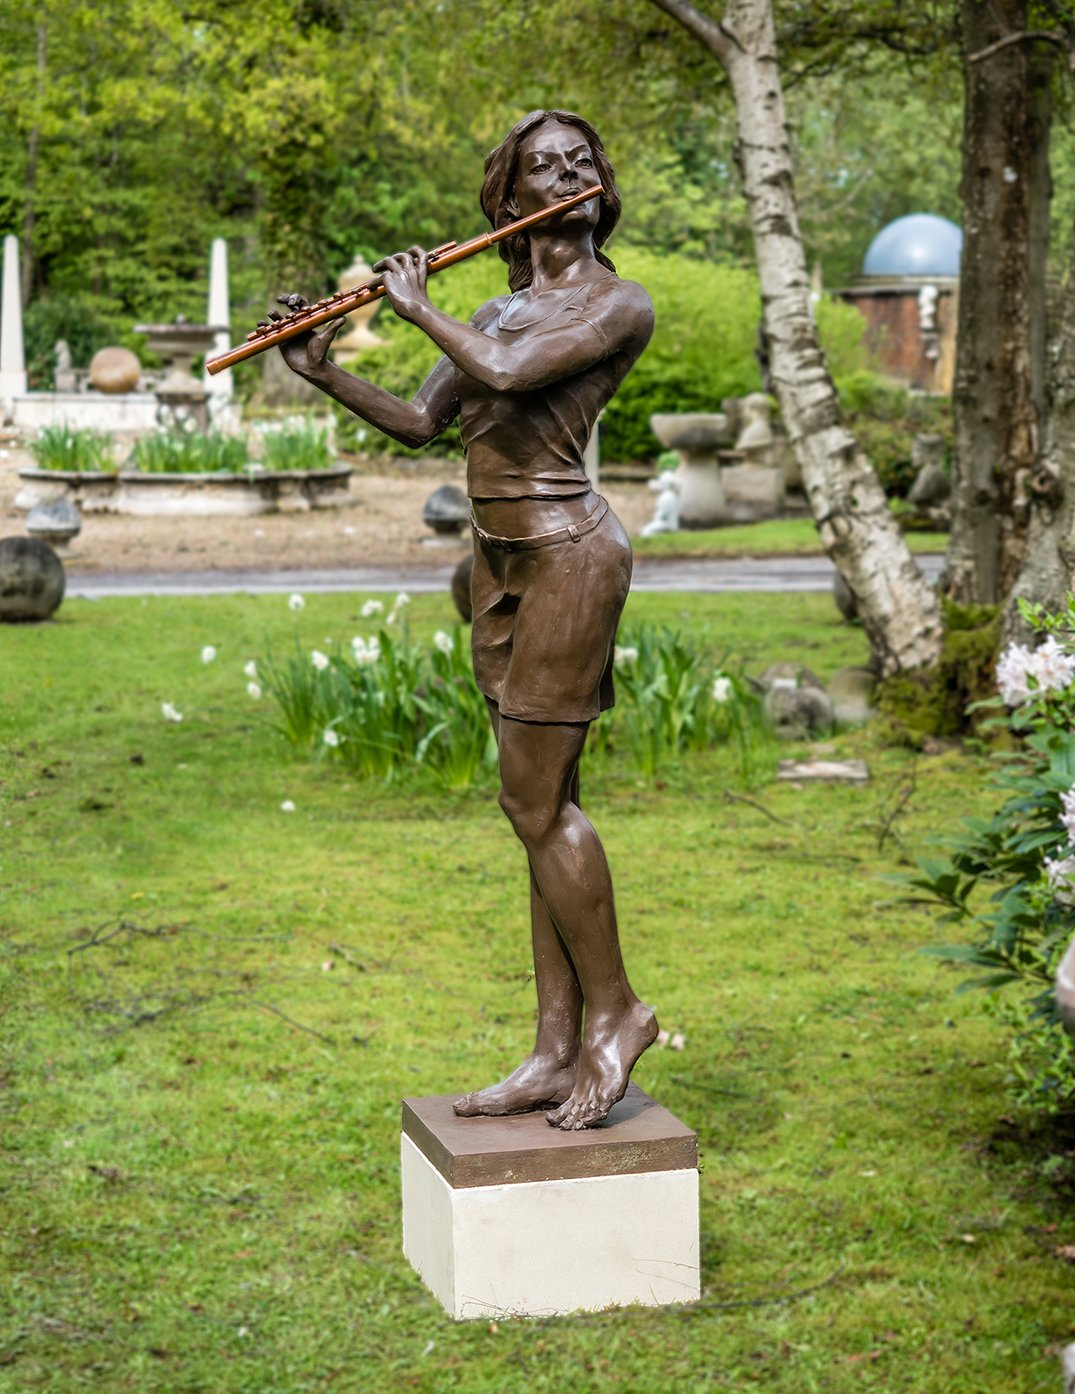 https://www.chilstone.com/garden-ornaments-statues-and-sculptures/limited-edition-music-sculpture